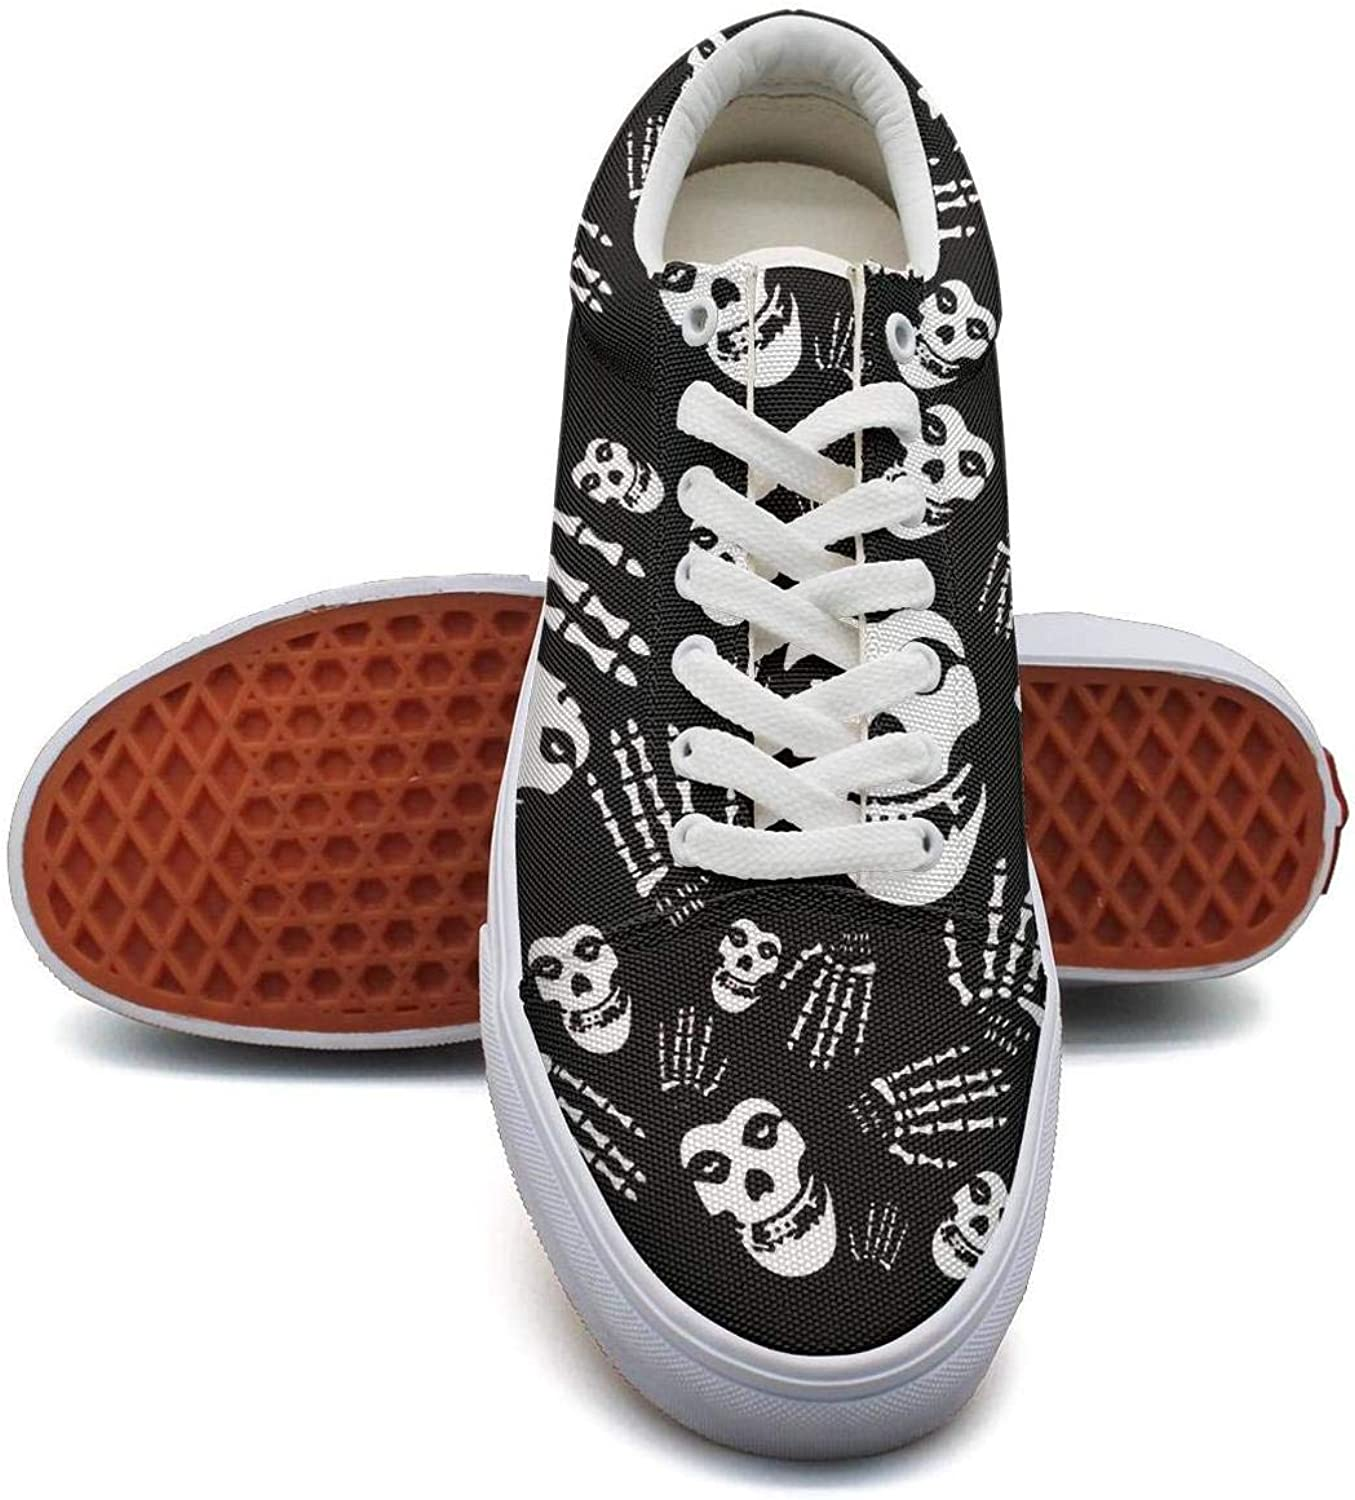 Sneakers for Women The-Misfits-Patches- Wear-Resistant Run shoes